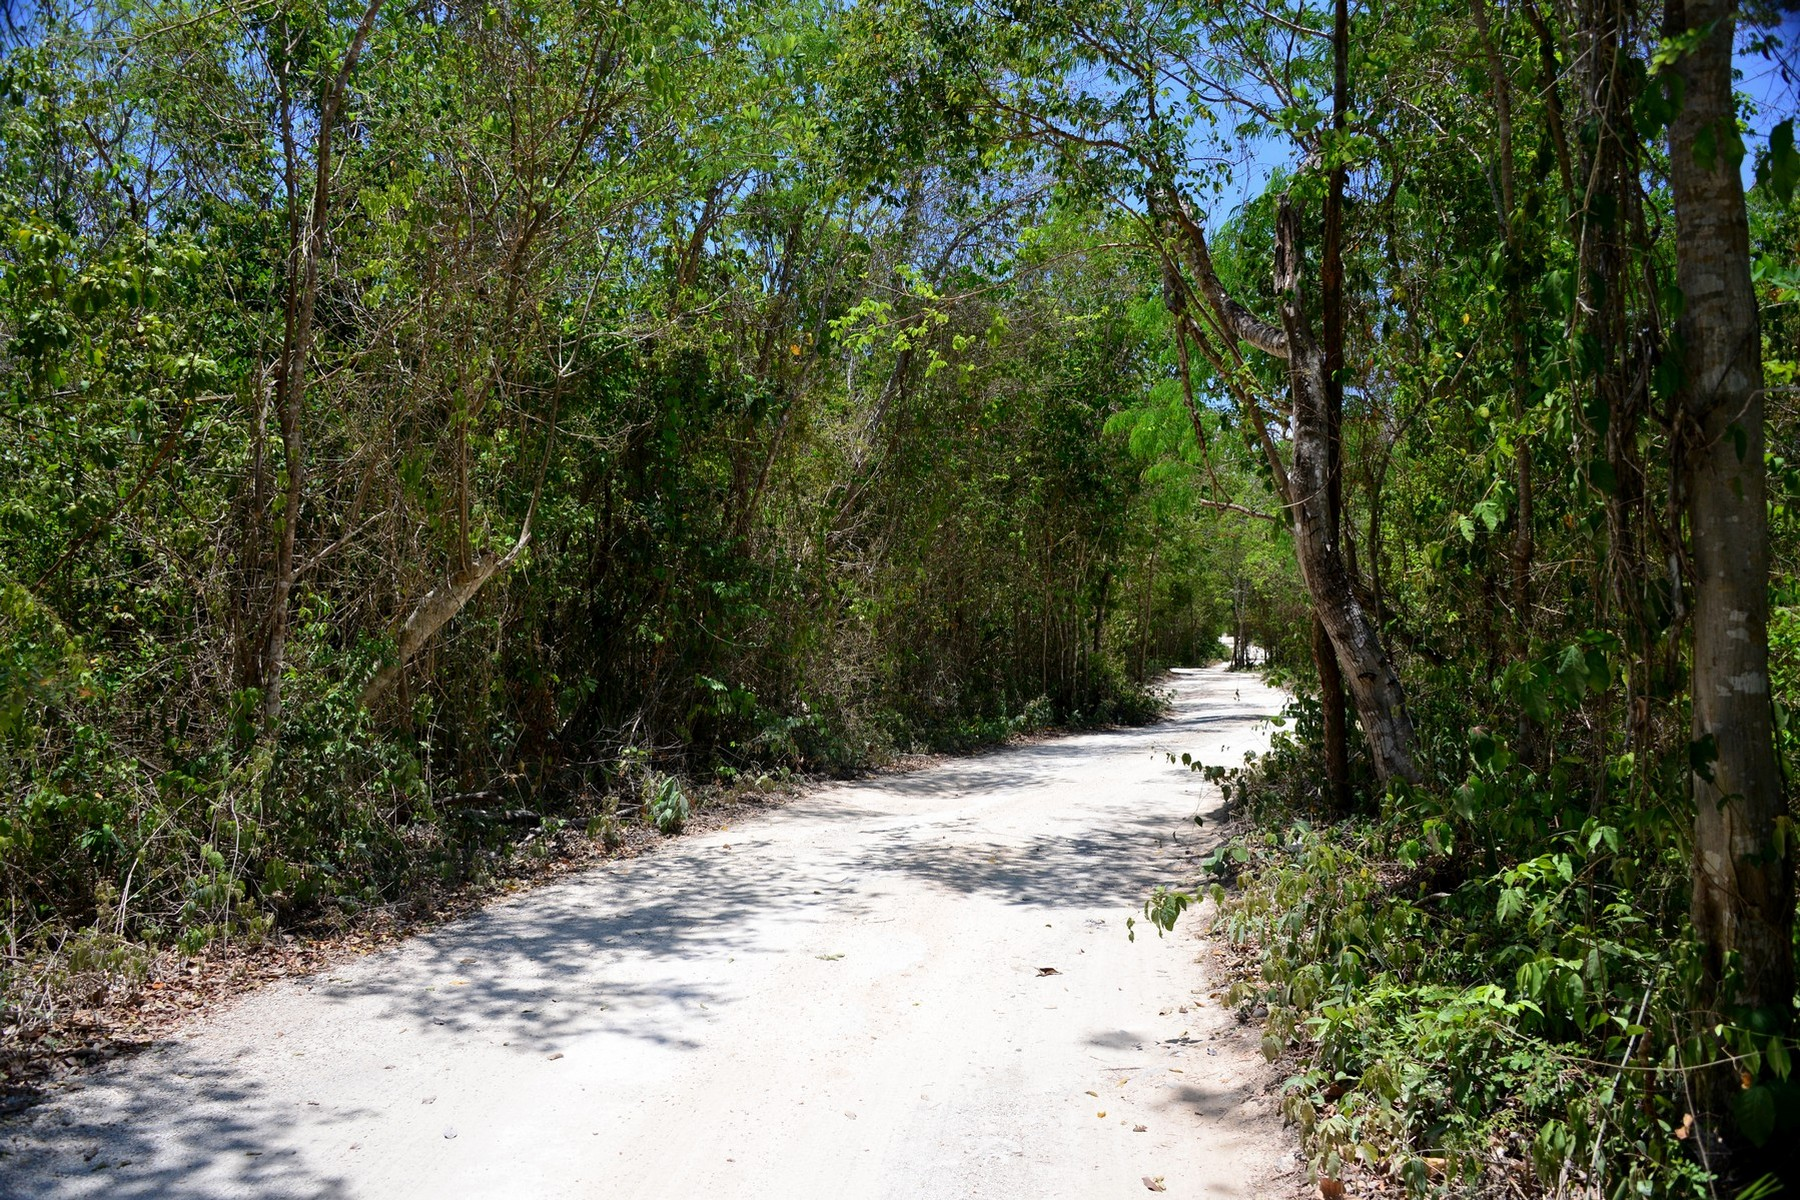 Land for Sale at LOTS 6 AND 7 8TH REGION LOTS 6 AND 7 8TH REGION Manzana 668 de la zona 8 Tulum, 77760 Mexico